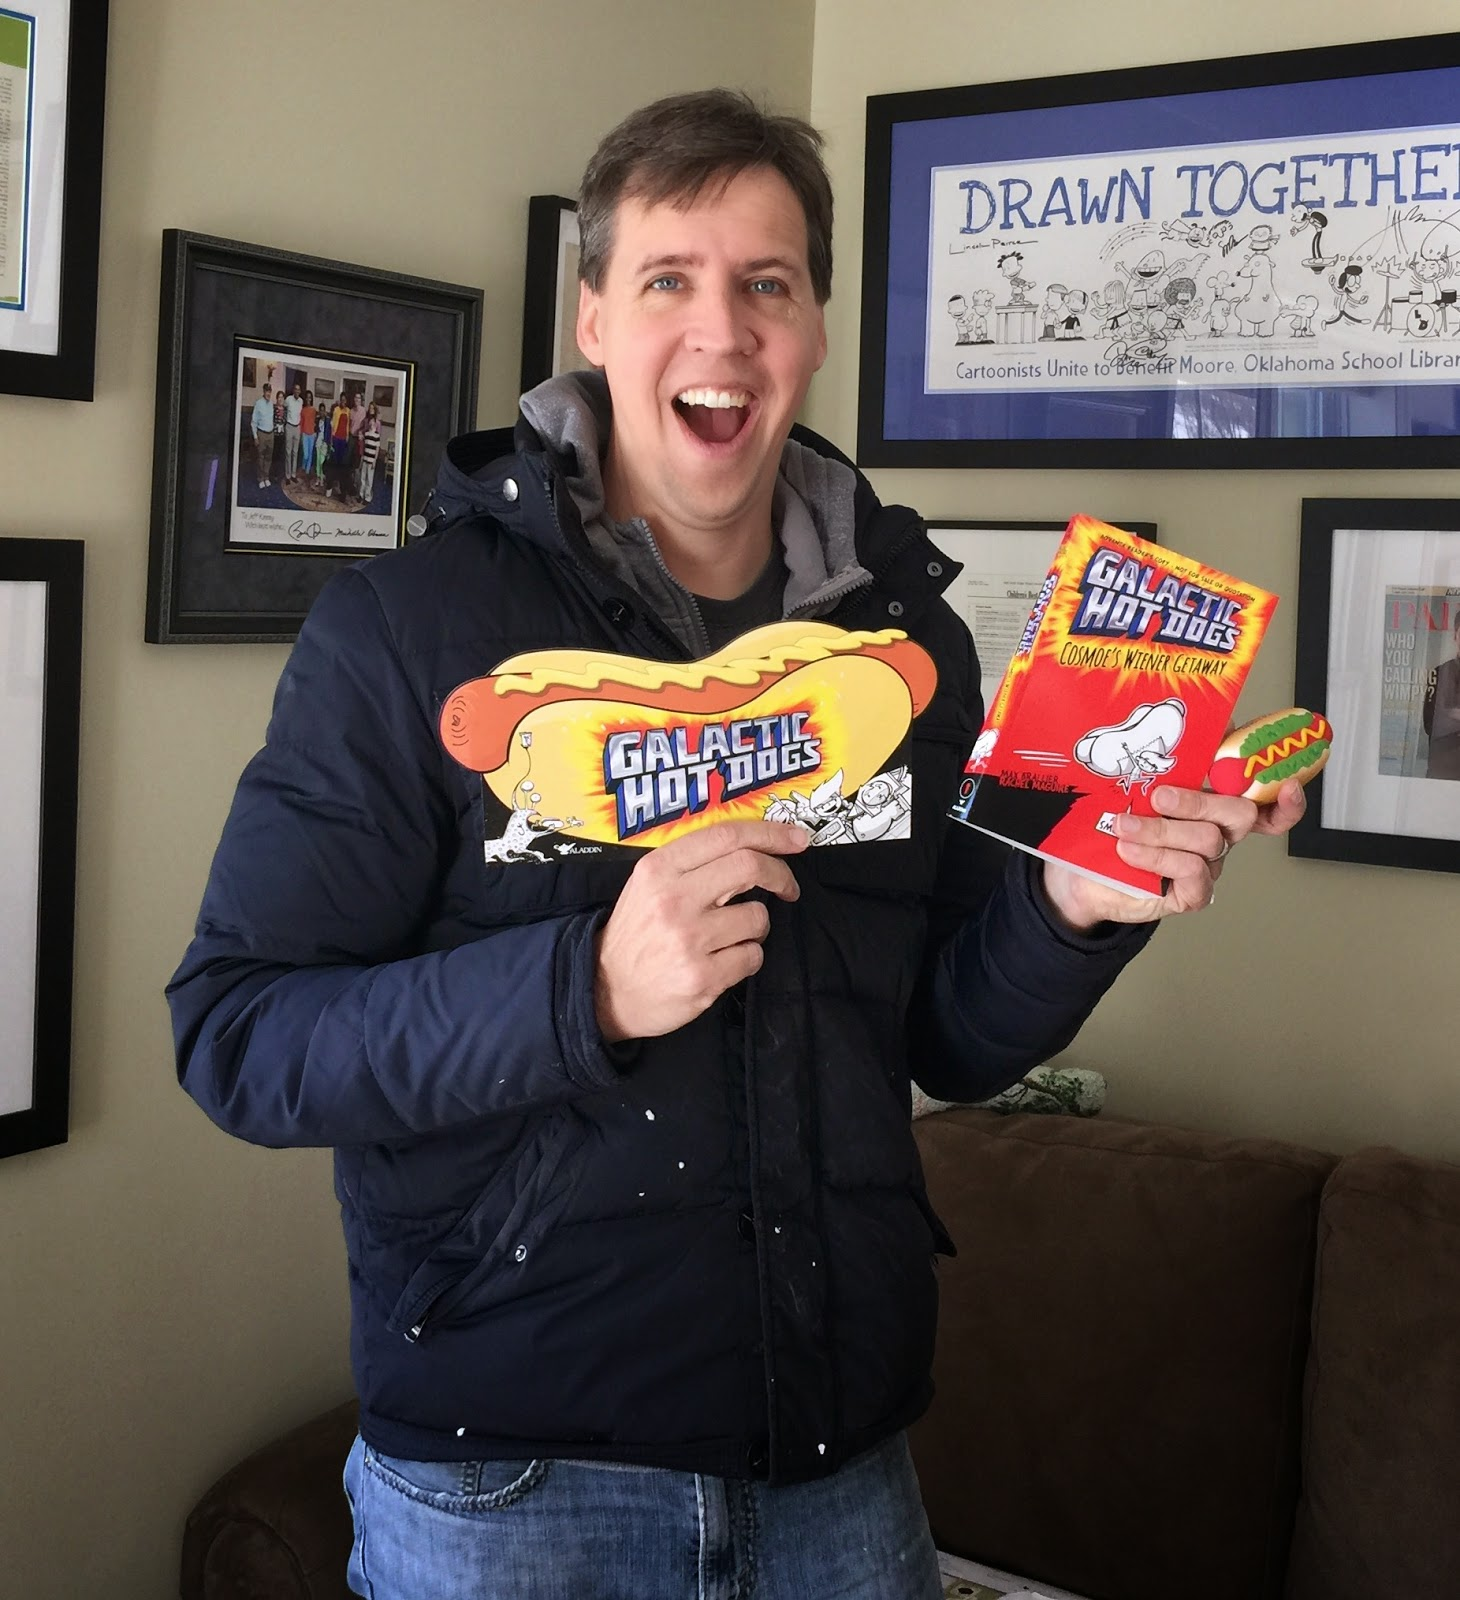 Jeff Kinney and Galactic Hot Dogs